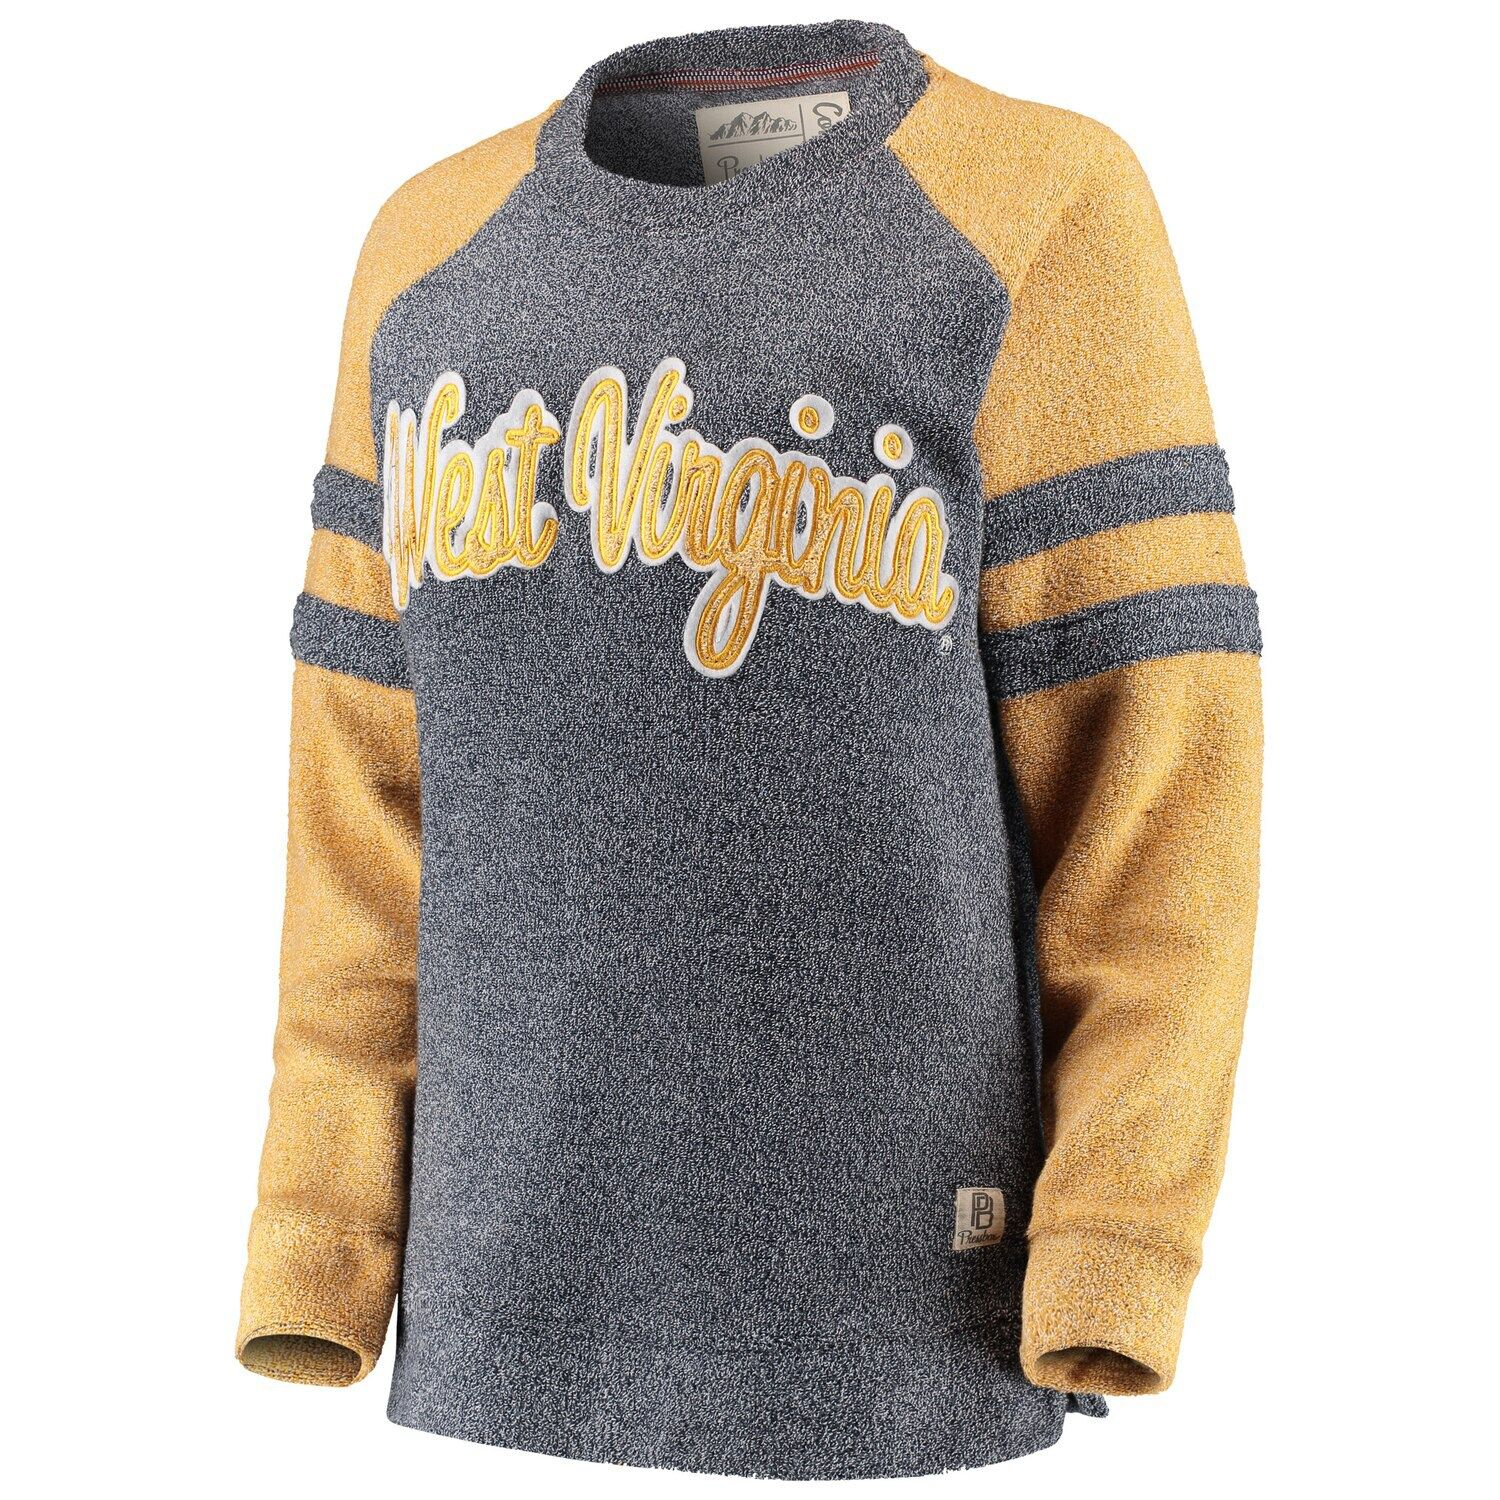 Women's Pressbox Navy West Virginia Mountaineers Dawn Twisted Terry Raglan Sleeve Stripe Crew Sweatshirt #westvirginia